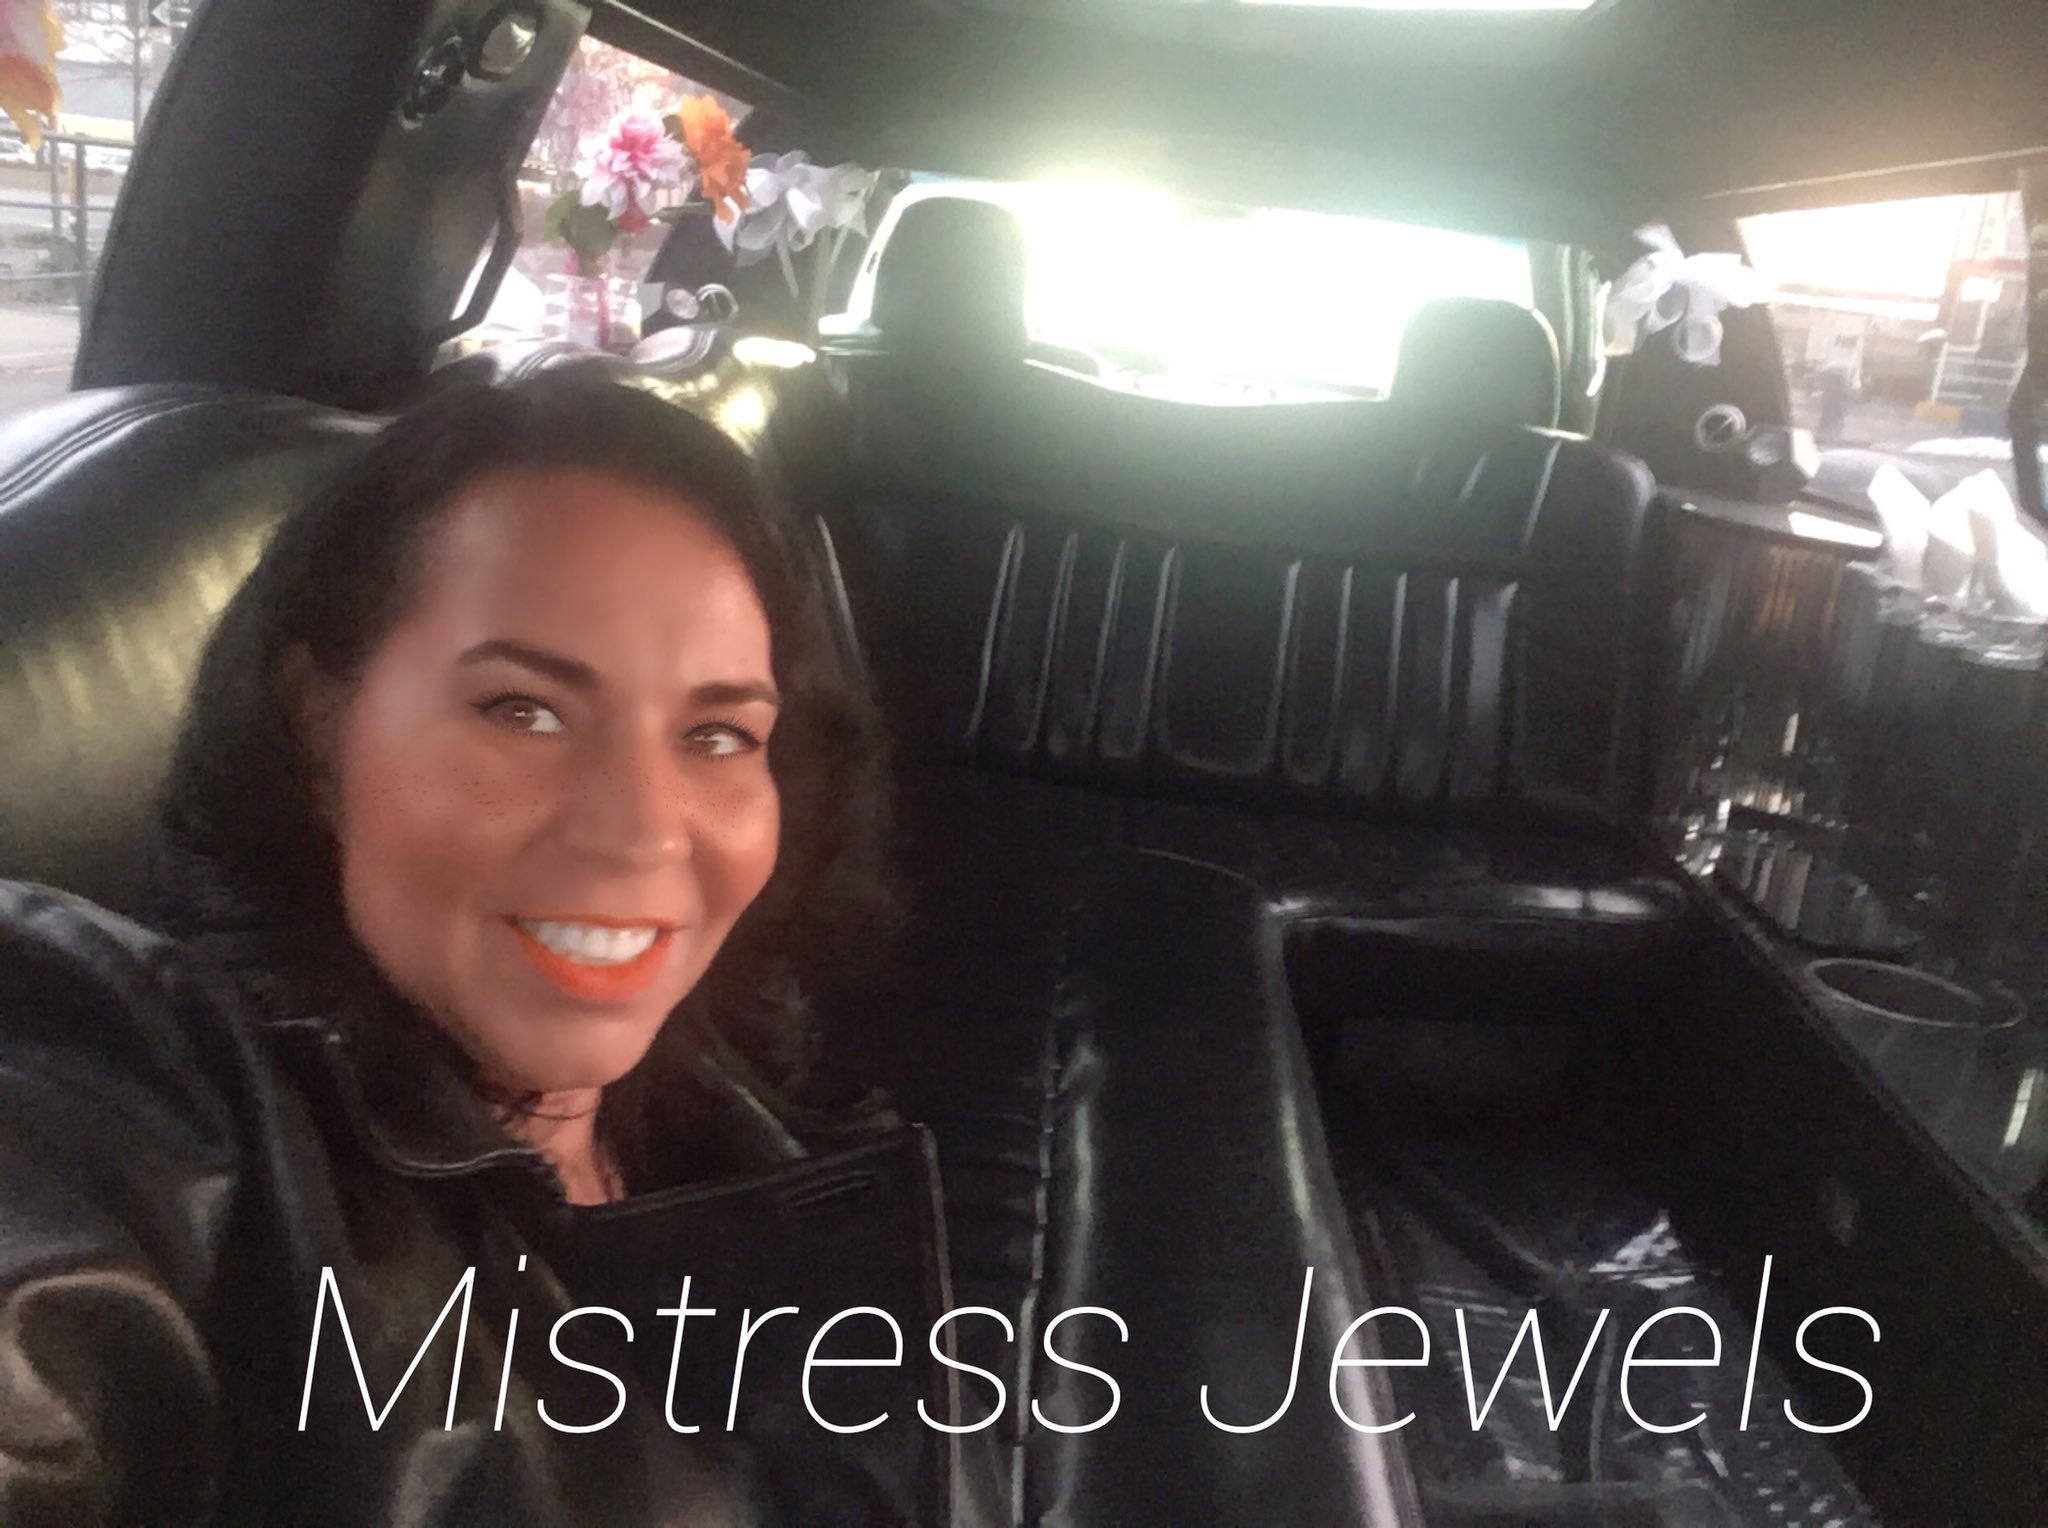 Love  ❤️ my #limo #NewYork #Manhattan #Mistress #Femdom #Escort https://t.co/kJ342sih9Y